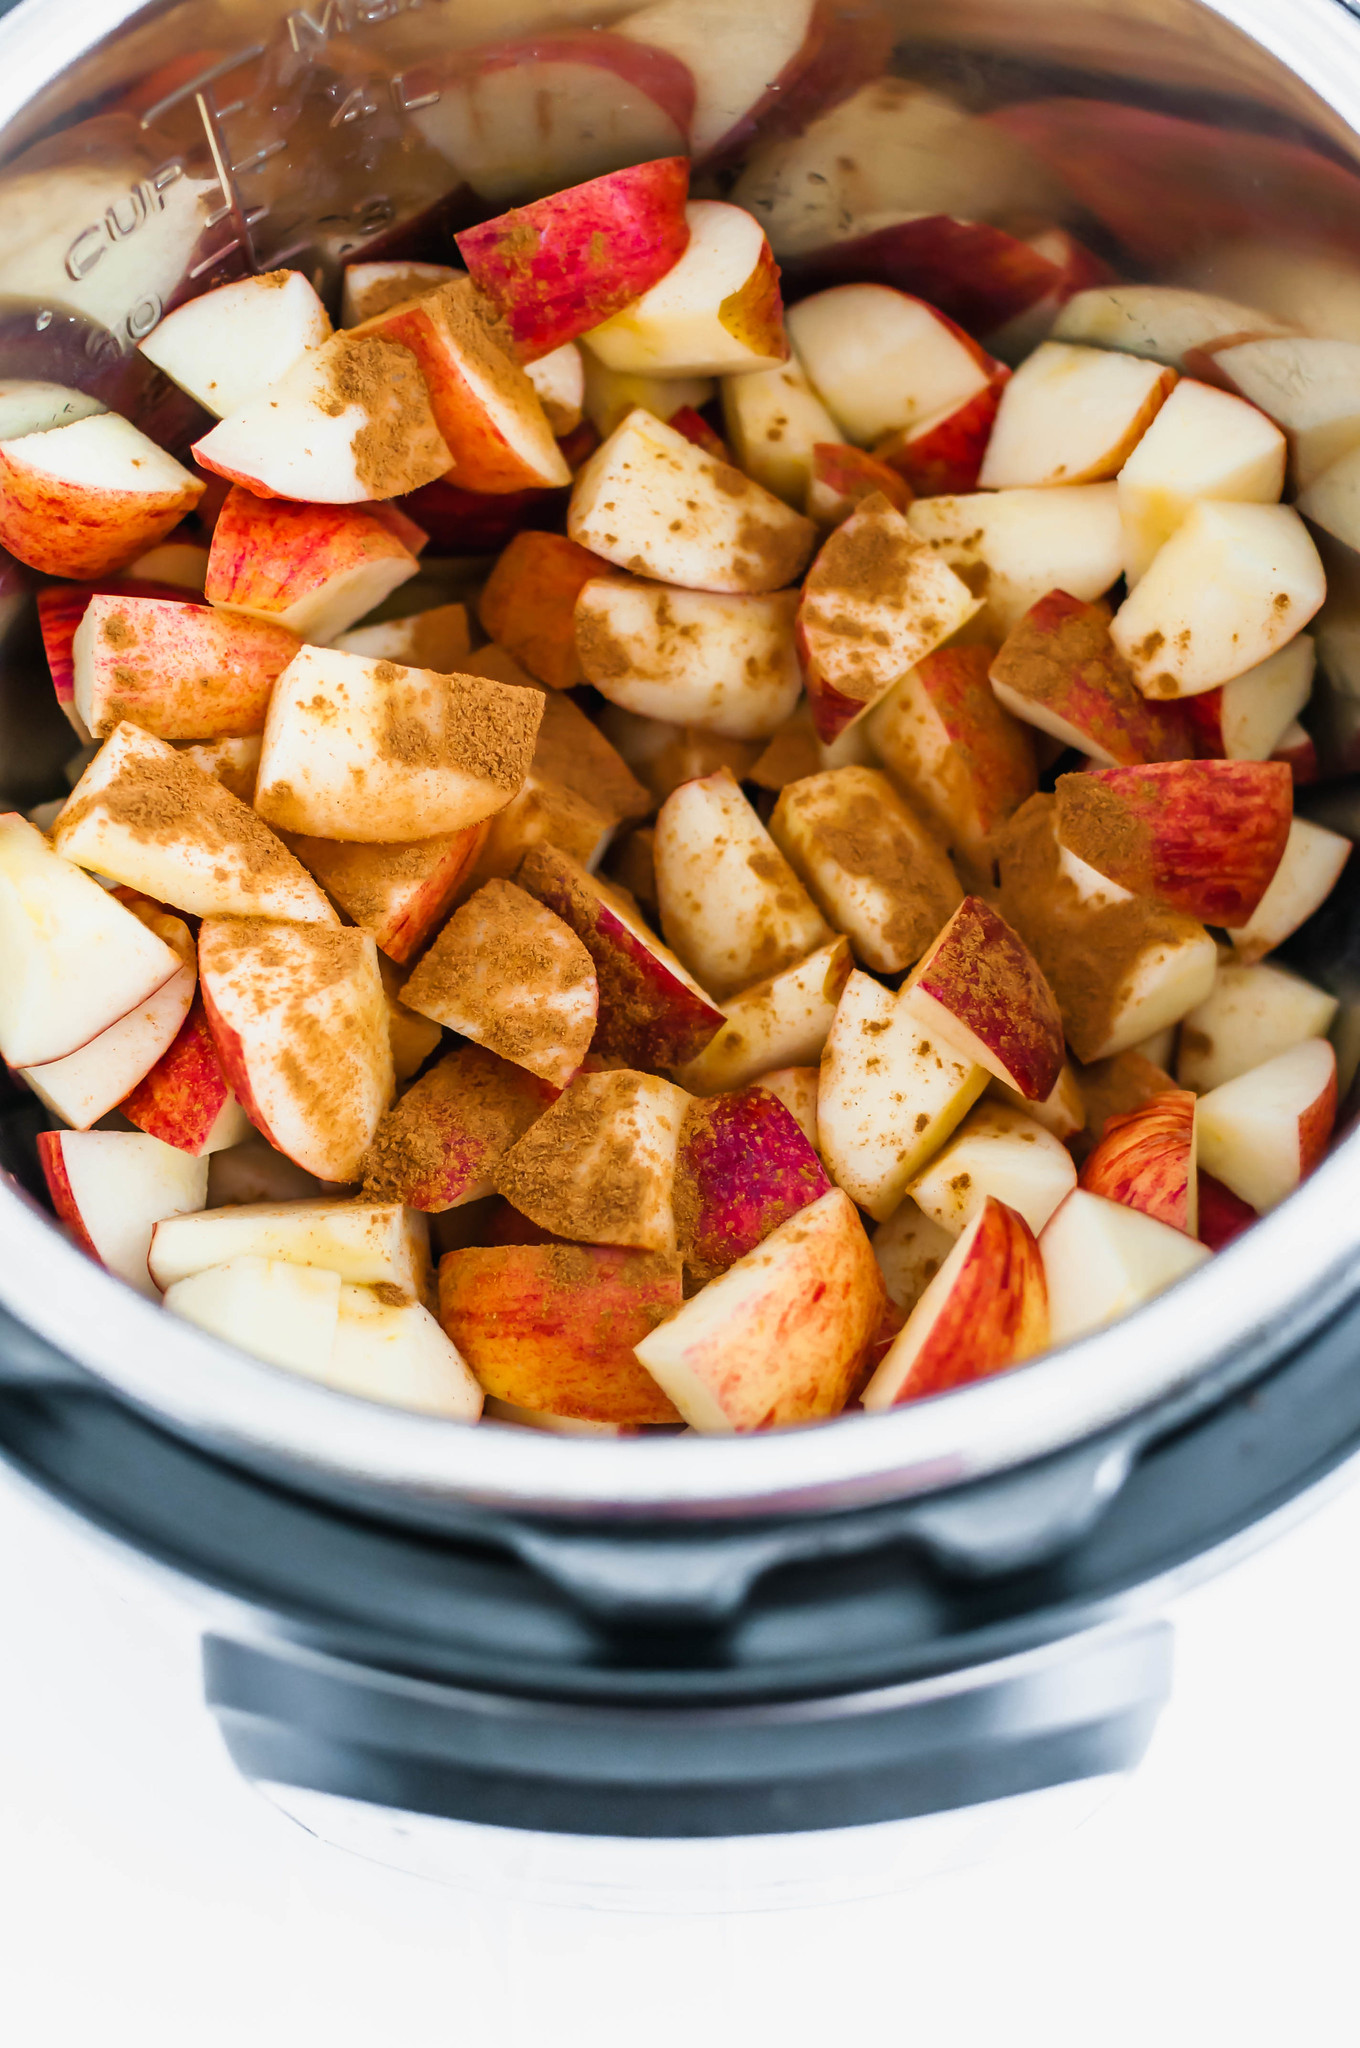 Ingredients, apples and cinnamon, in Instant Pot.